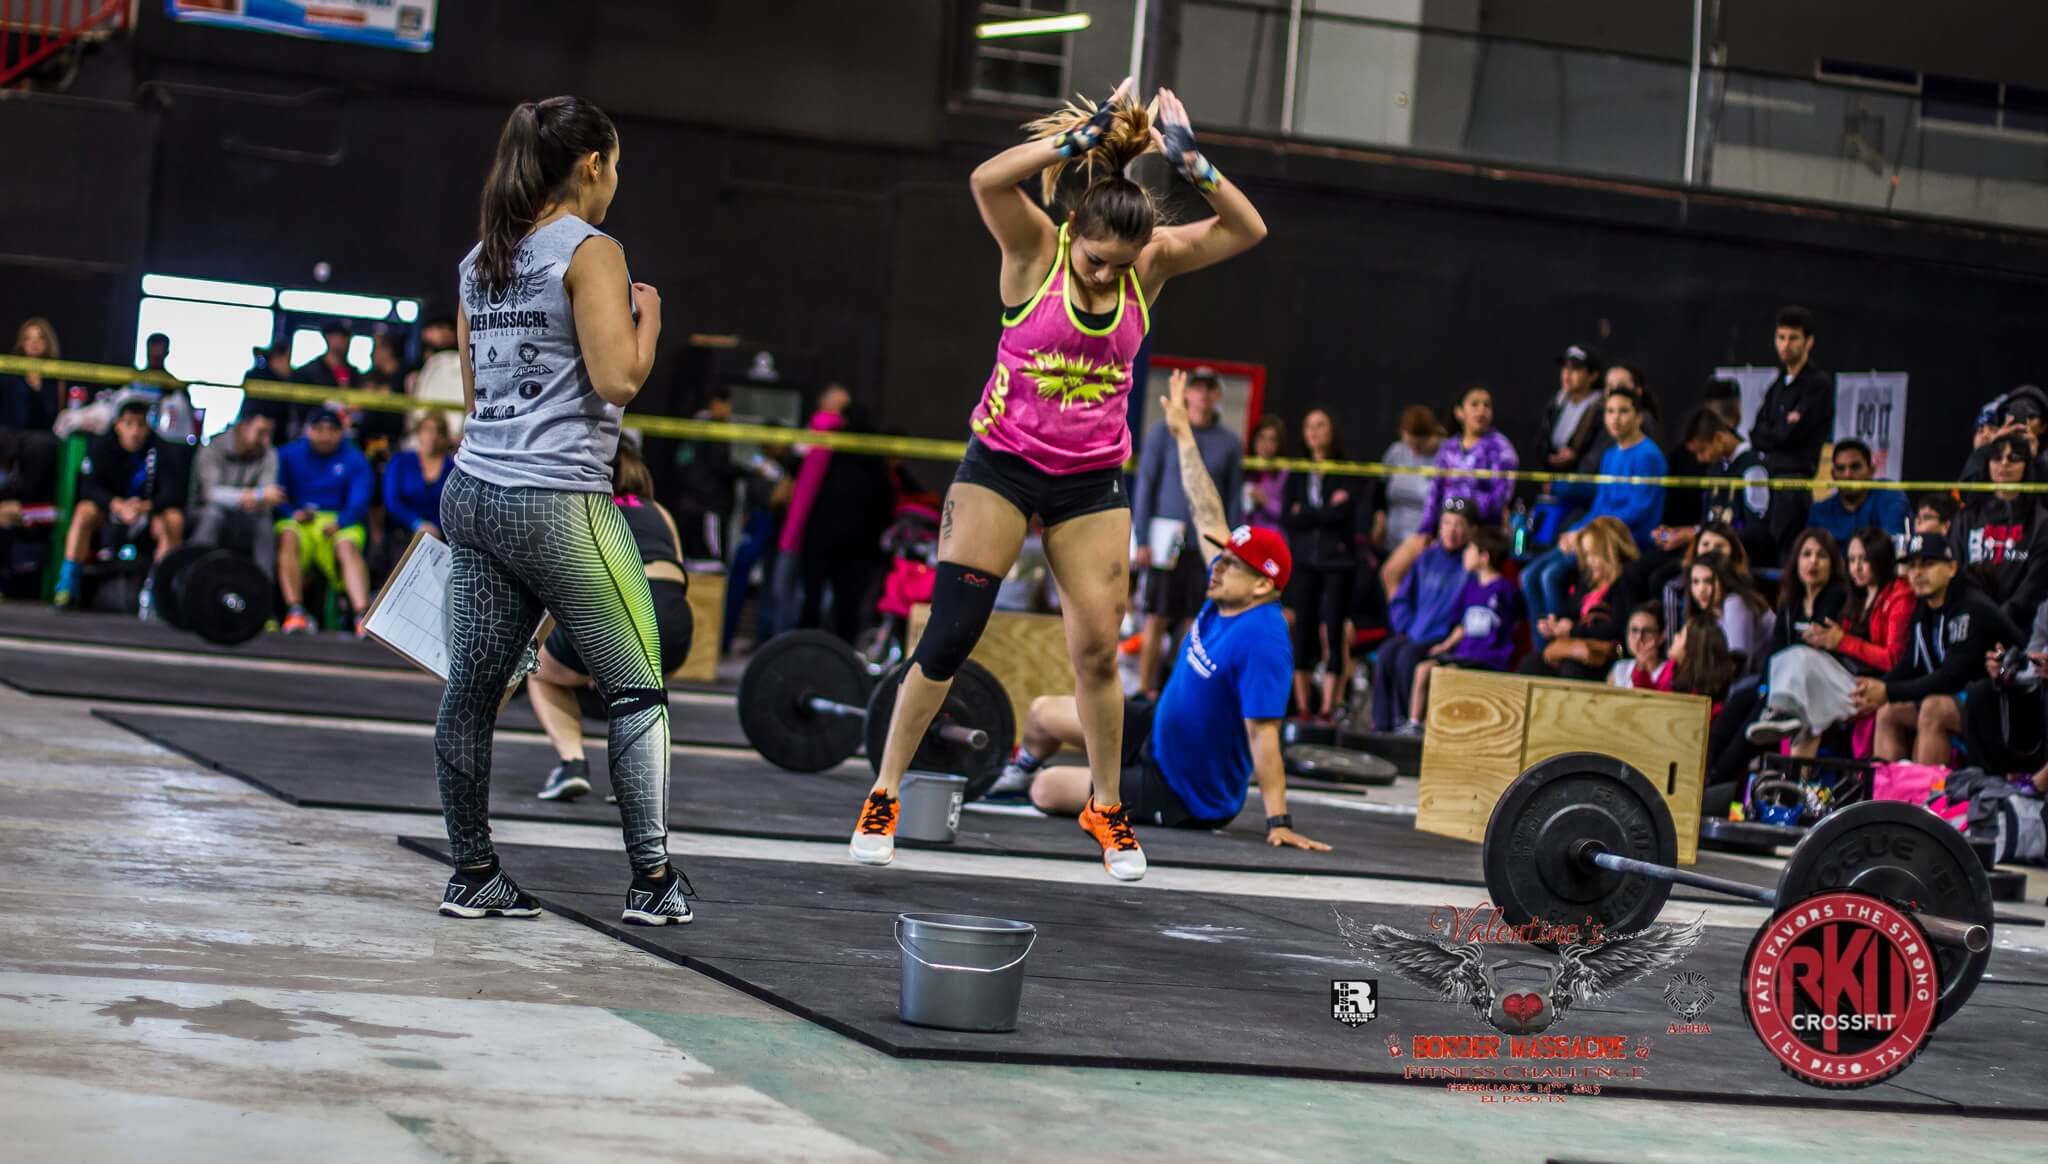 People who crossfit are extremely passionate about their sport